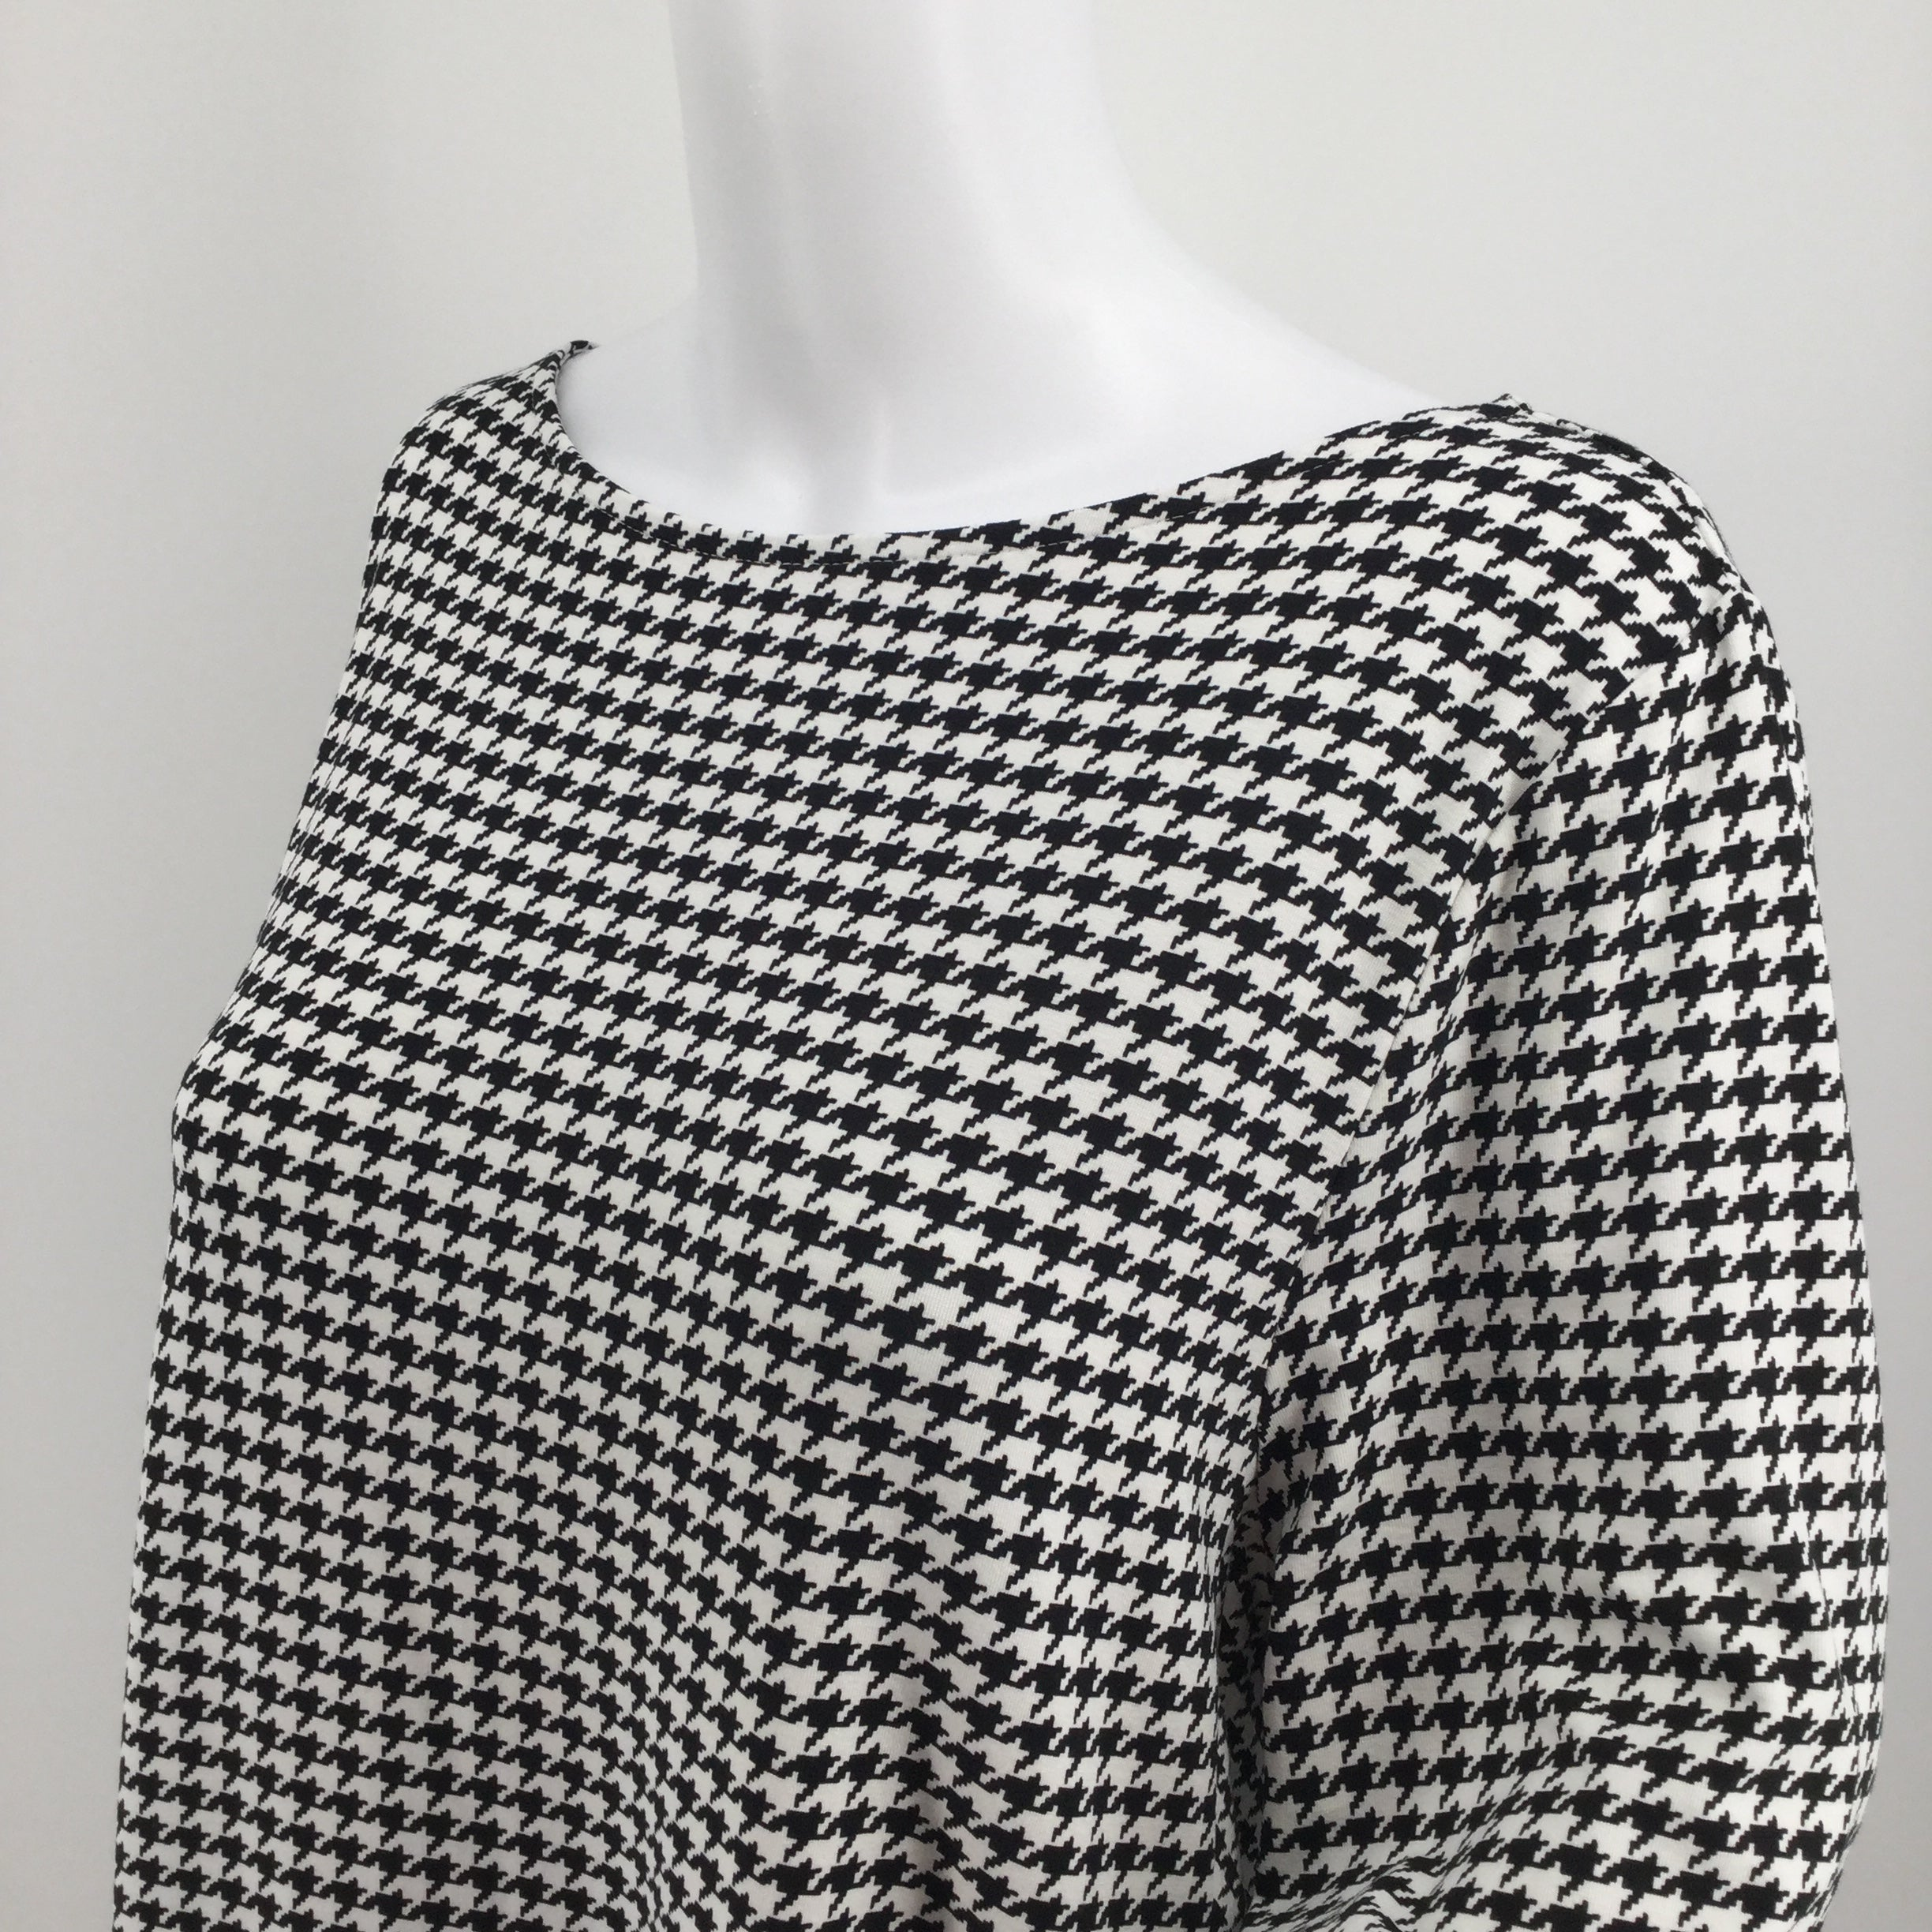 J Jill - THIS AMAZING SOFT AND STRETCHY J JILL DRESS IN A HOUNDSTOOTH PRINT IS BRAND NEW WITH TAGS ON AND JUST WAITING TO BE ADDED TO YOUR COLLECTION.